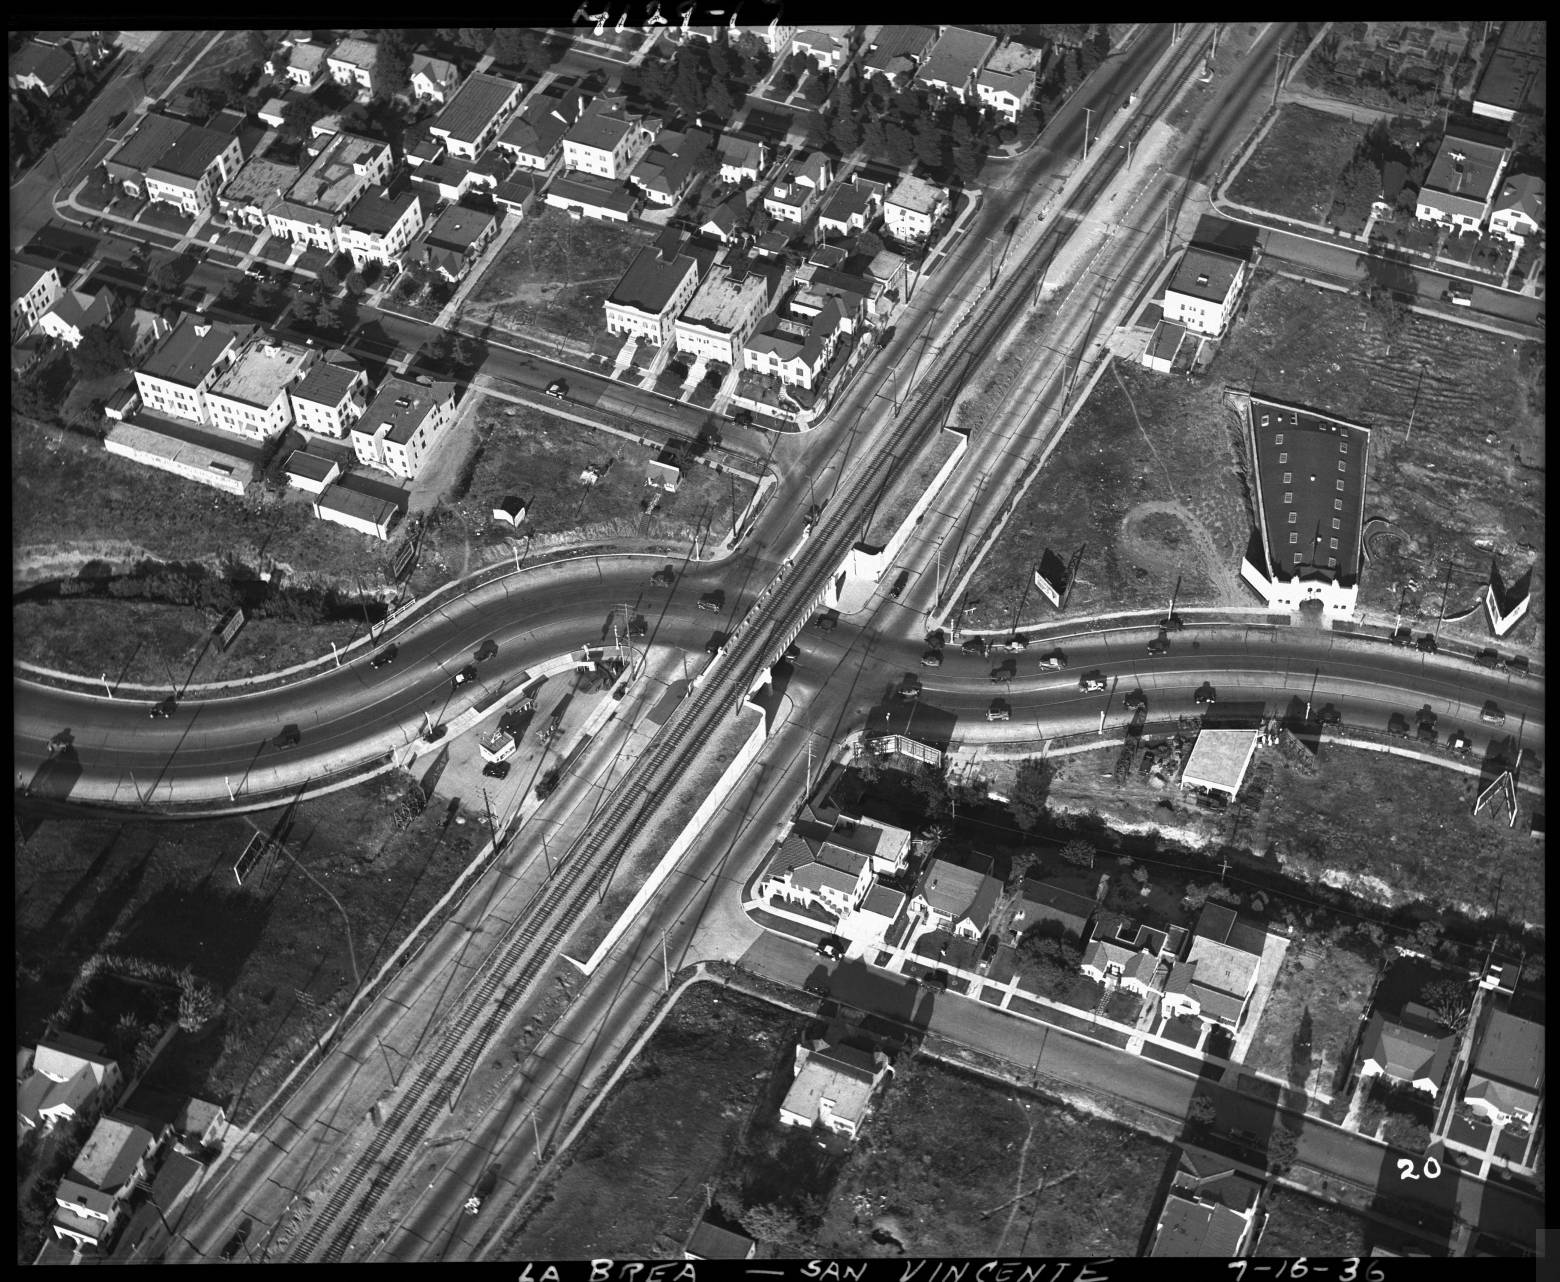 A viaduct over La Brea Avenue at San Vicente separated streetcar from automobile traffic. 1936 aerial photo courtesy of the Automobile Club of Southern California Archives.